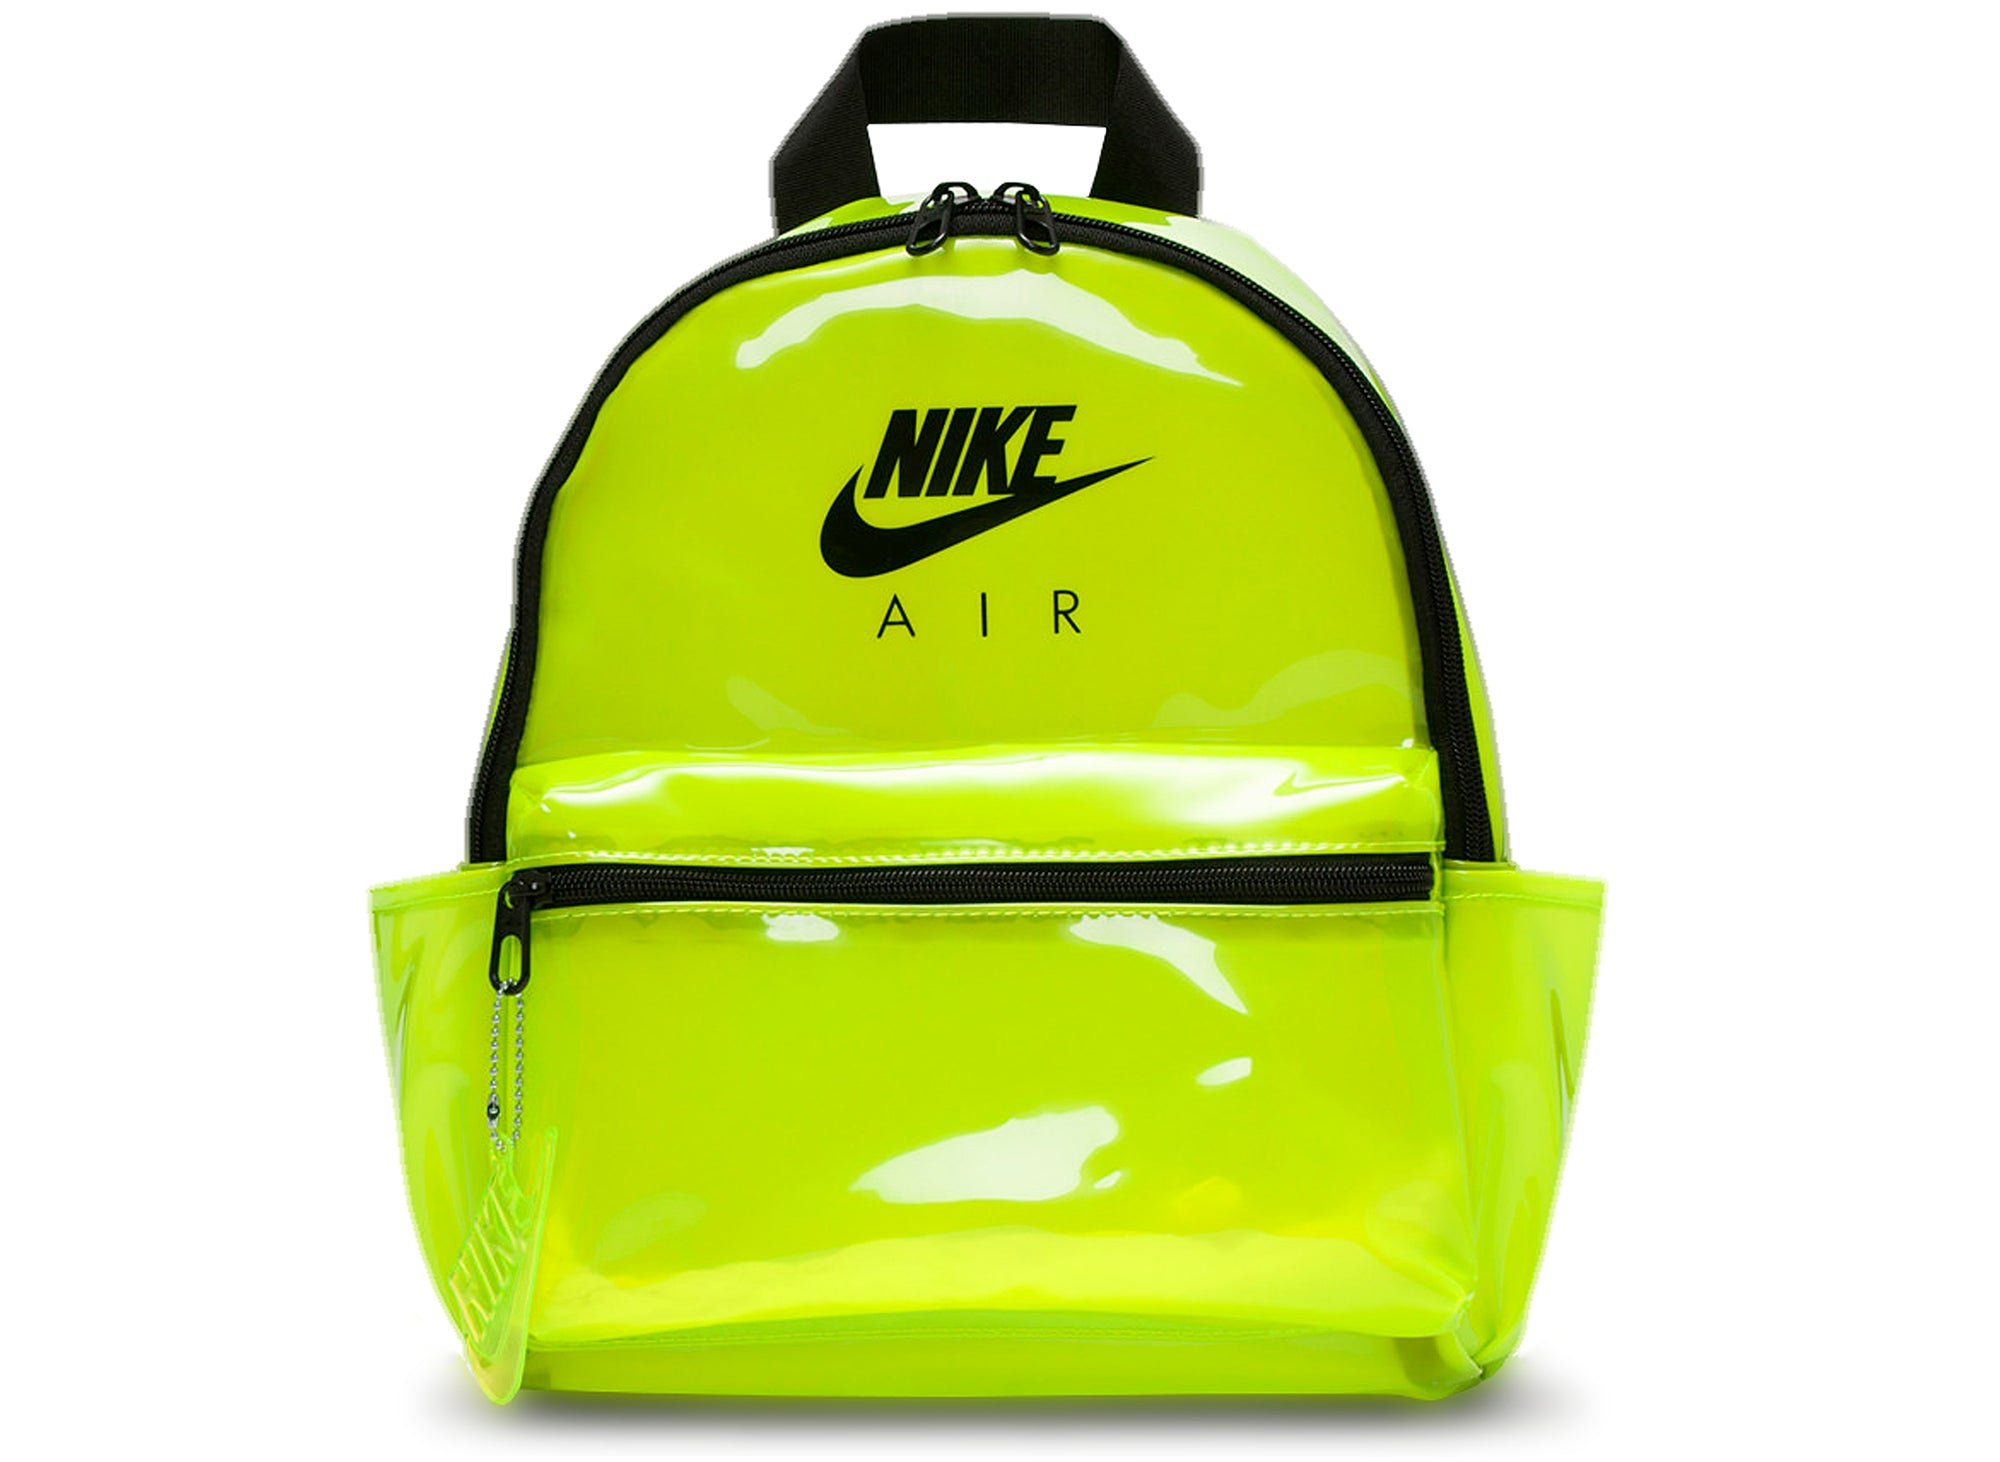 Nike Just Do It Mini Backpack in Volt